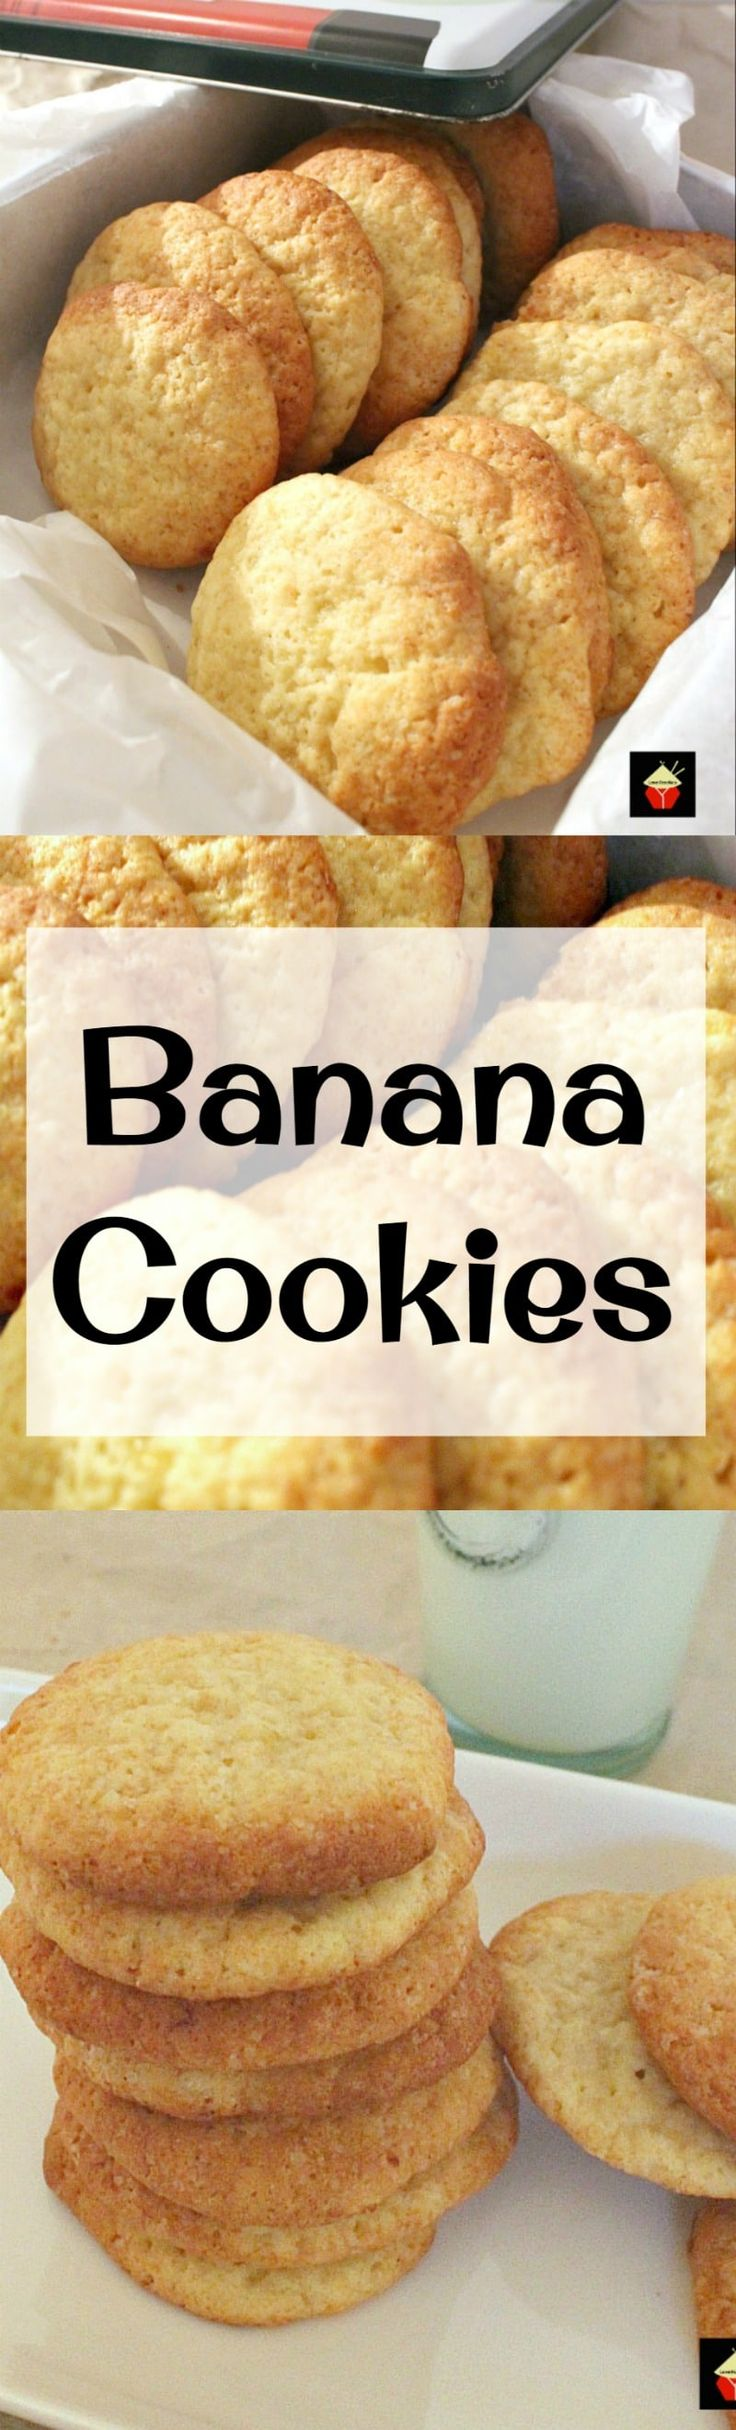 Banana Drop Cookies. Theses are a light fluffy cookie and great for using up those overripe bananas! Easy recipe too! | Lovefoodies.com via @lovefoodies